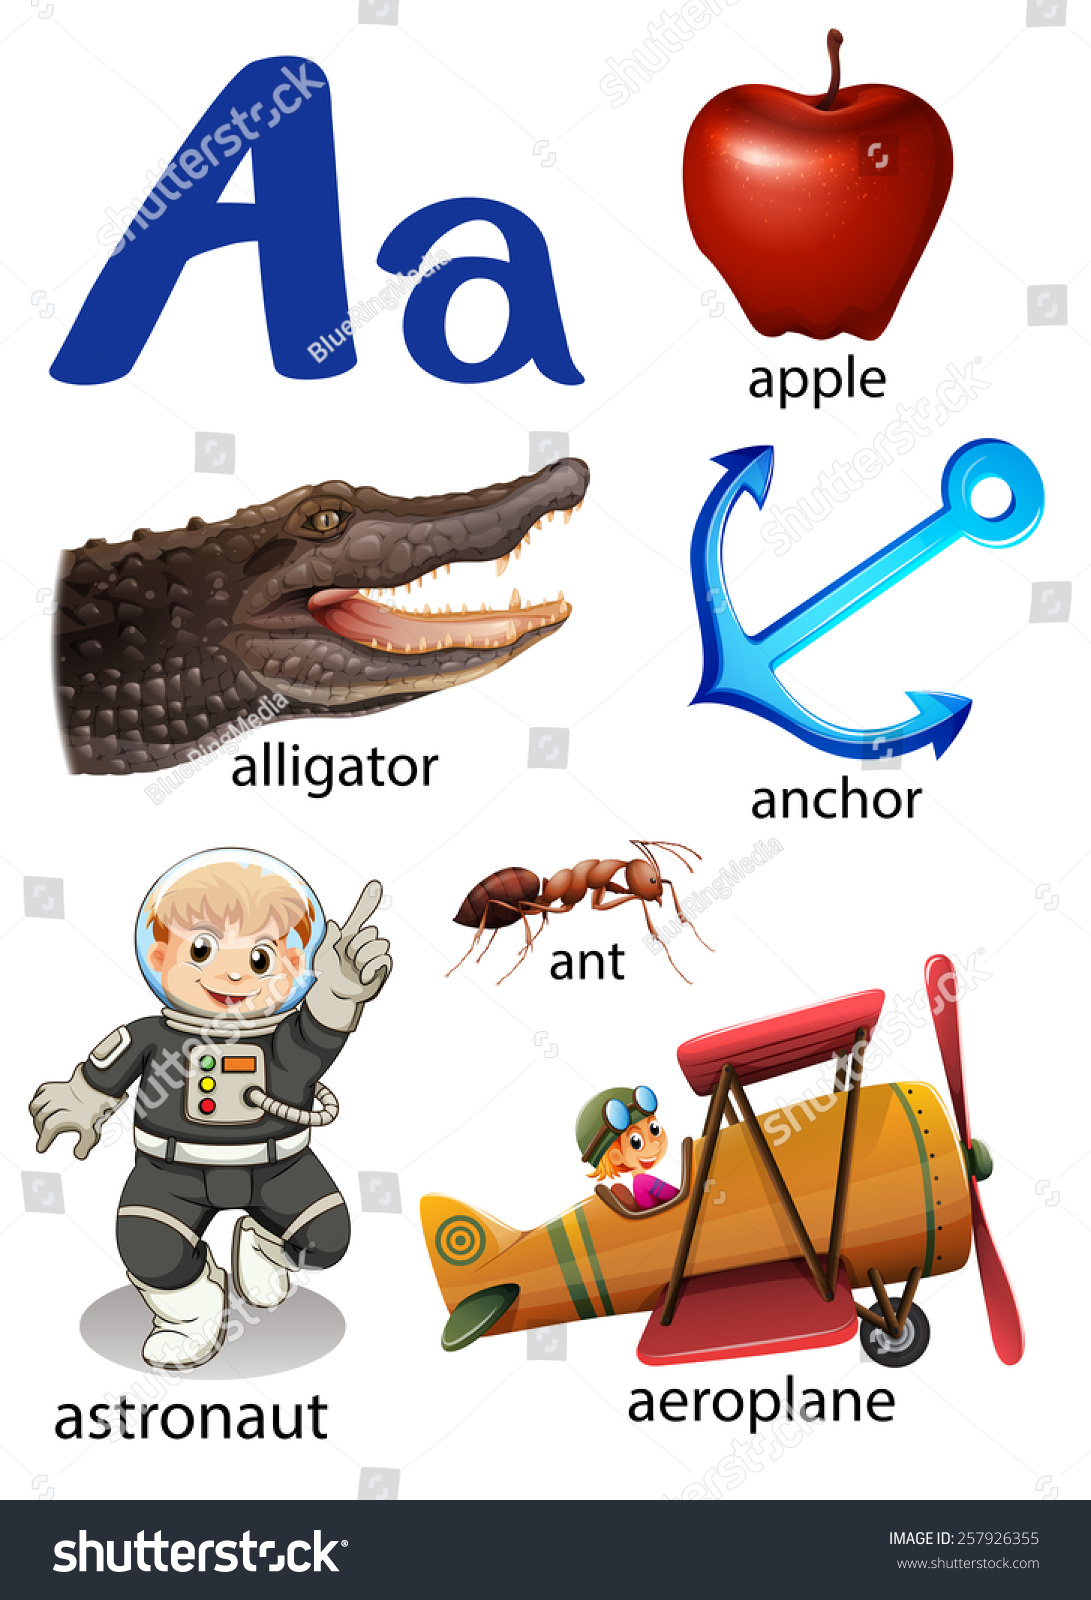 Things That Start With The Letter A On A White Background